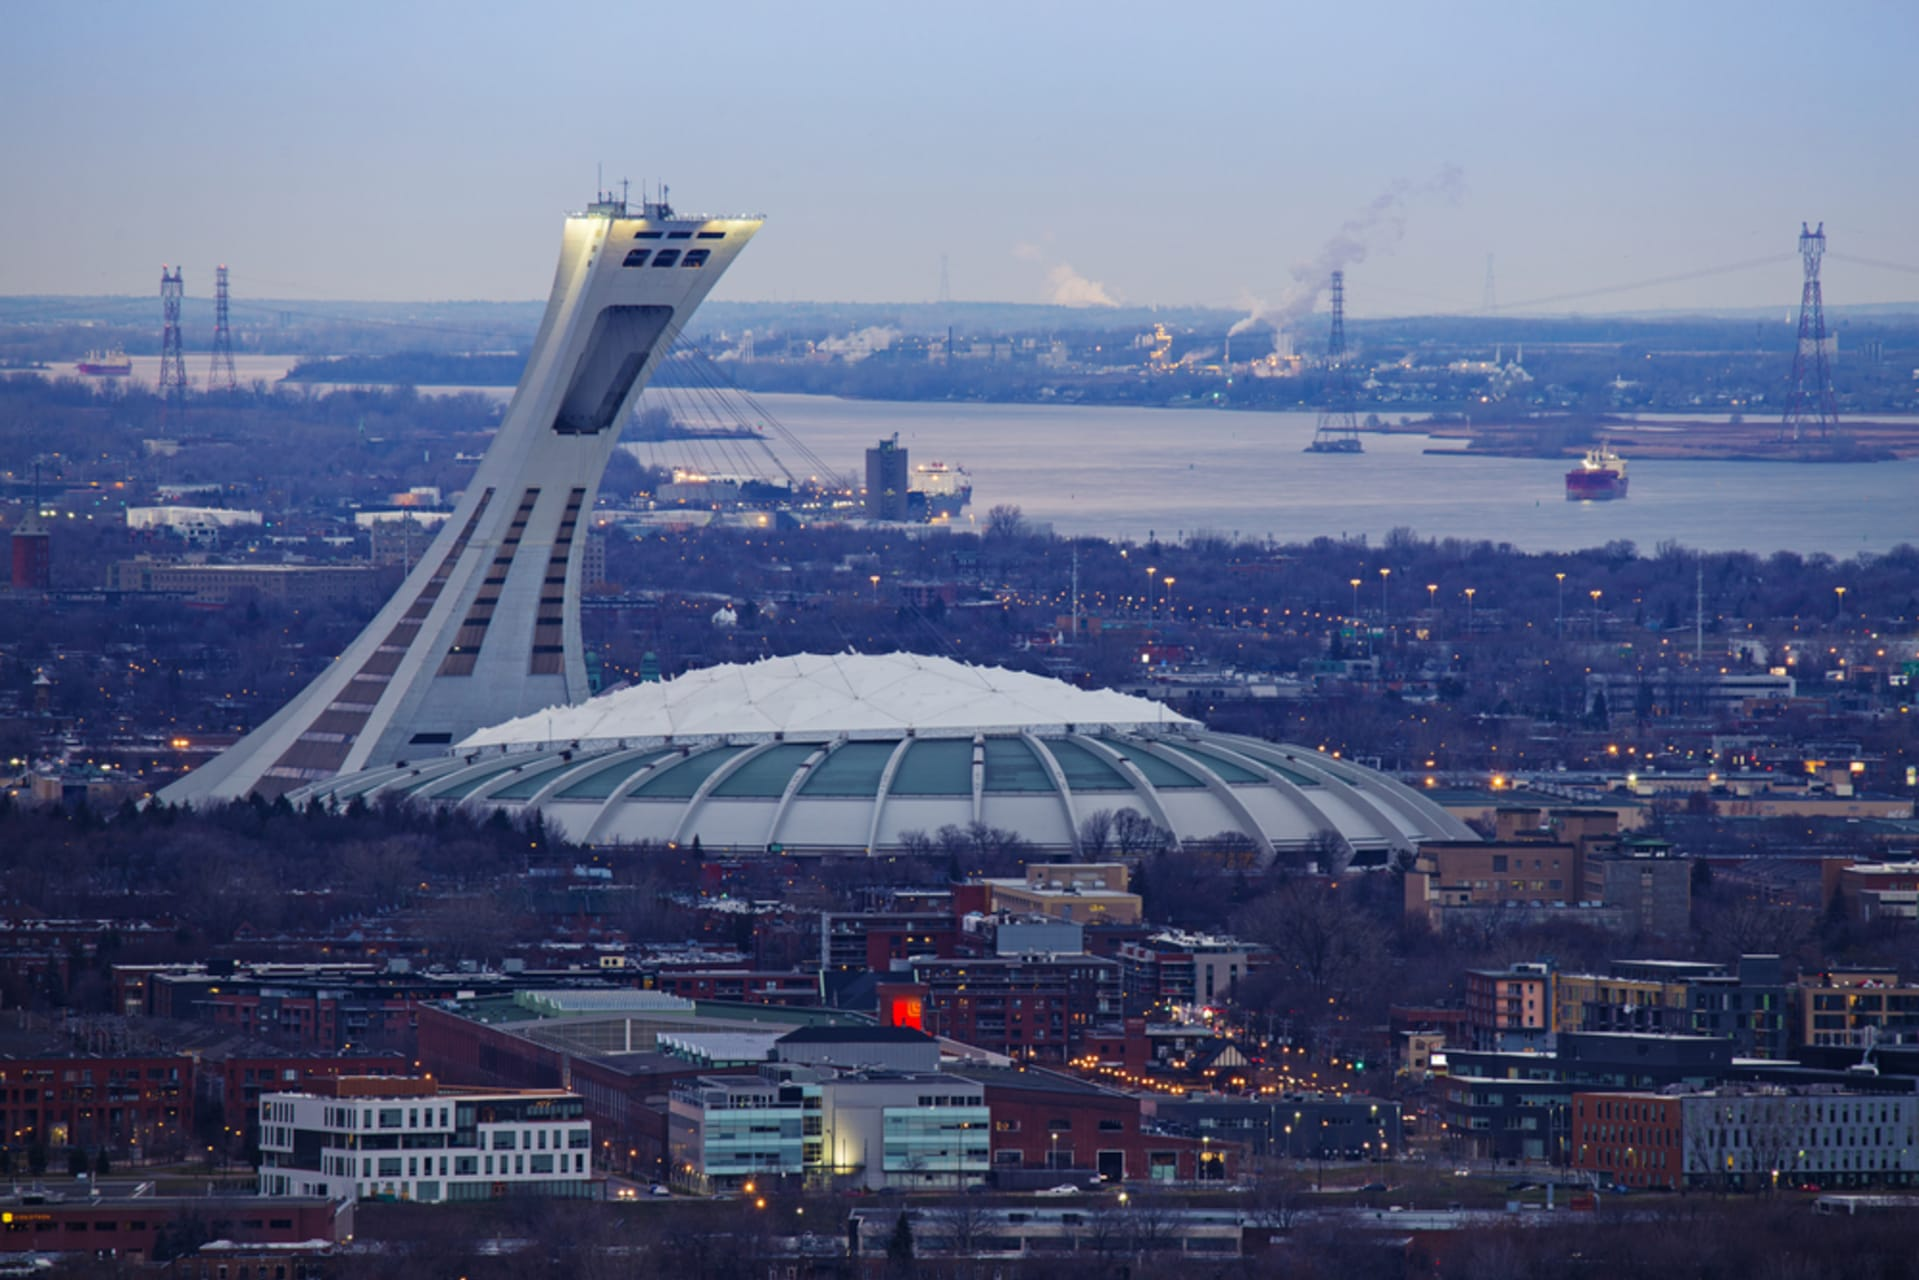 Montreal - Montreal: First Canadian Olympics host city